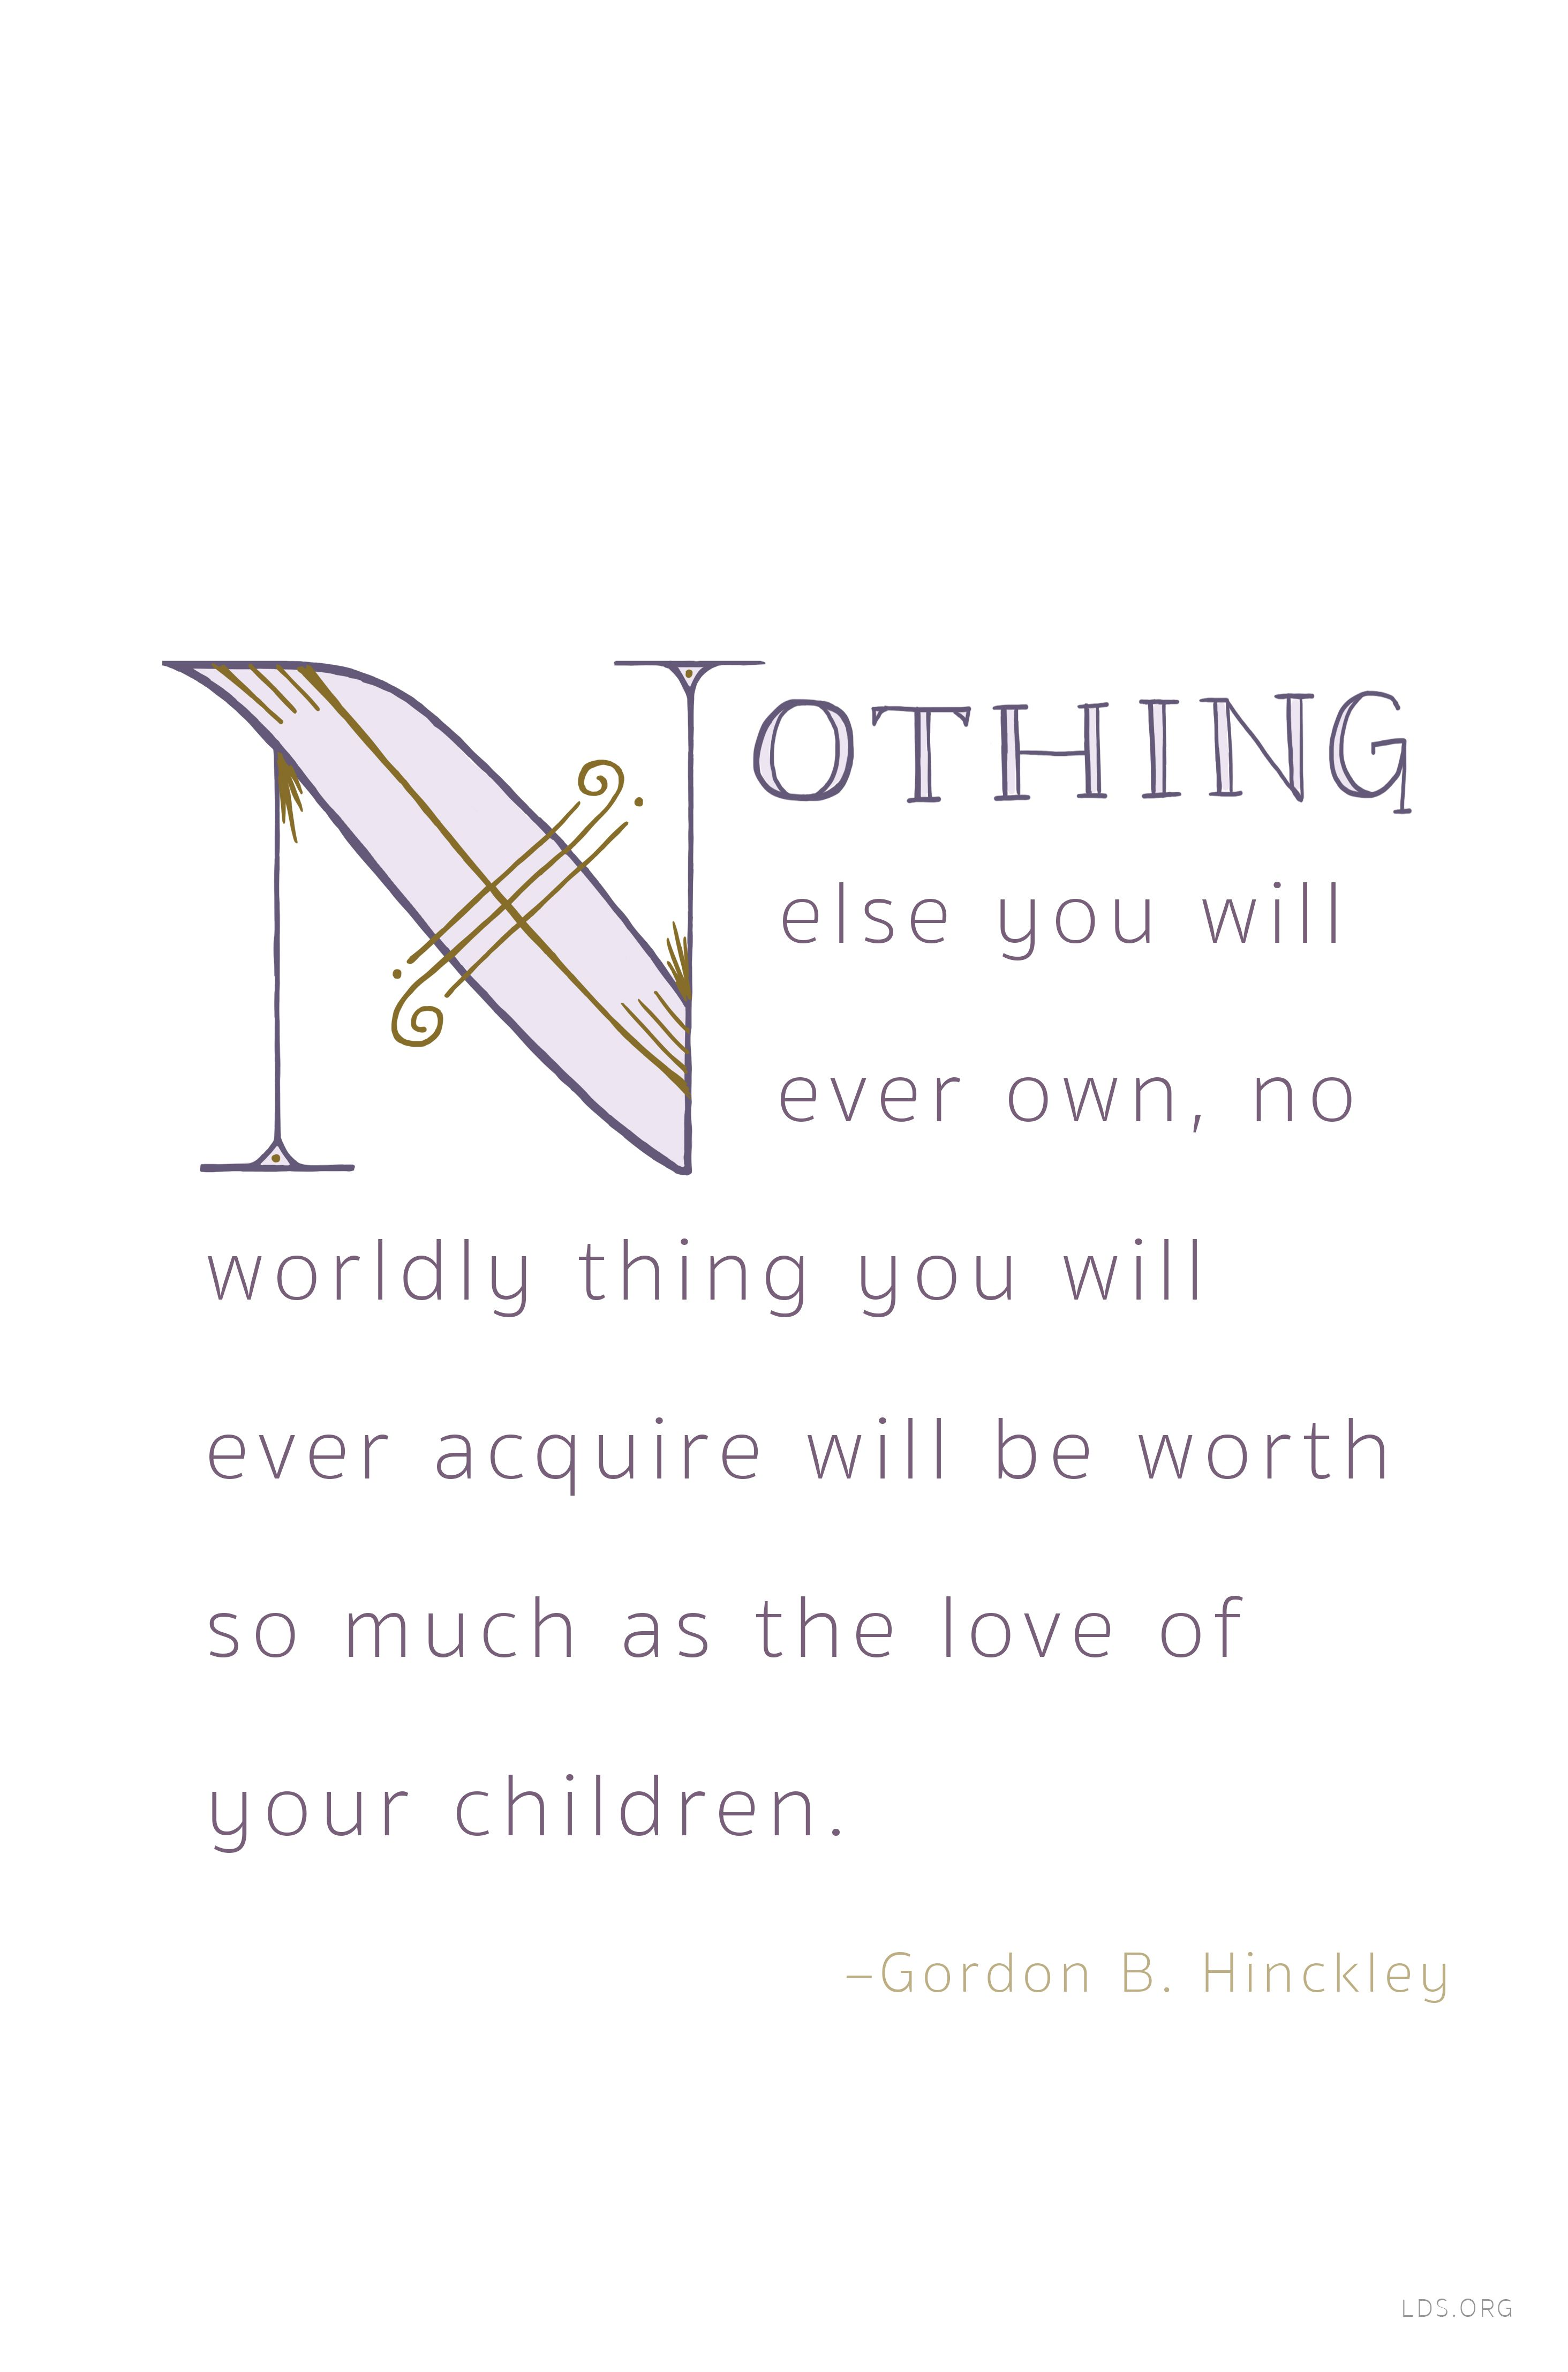 """""""Nothing else you will ever own, no worldly thing you will ever acquire will be worth so much as the love of your children.""""   — Gordon B. Hinckley #LDS"""